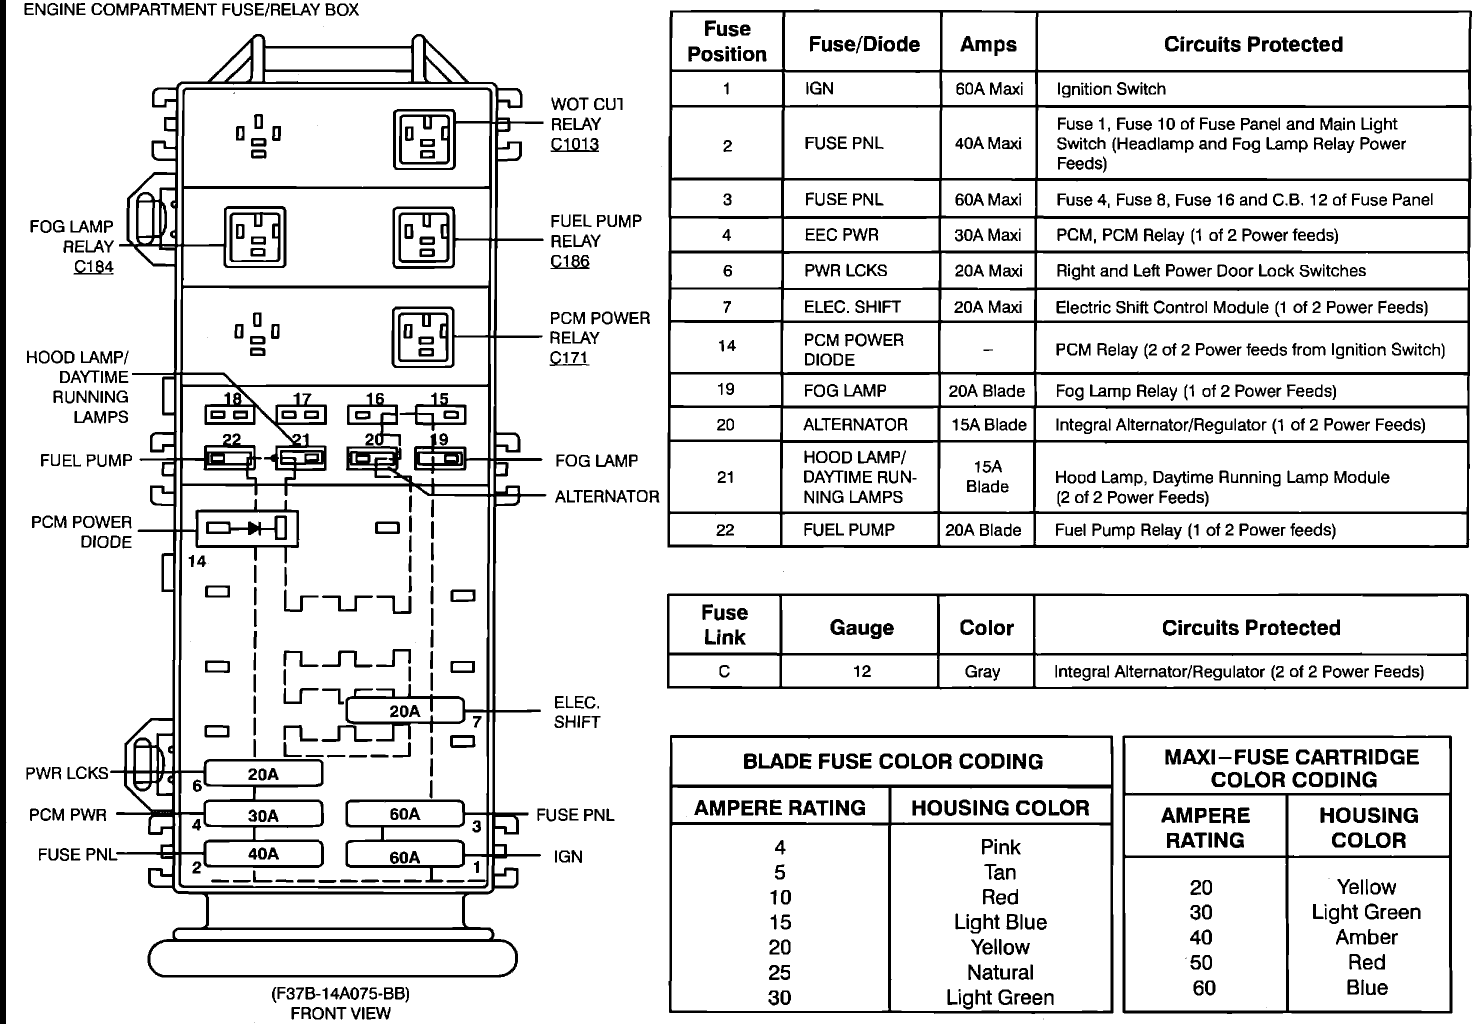 02 Ford Focus Fuse Diagram 2004 Ranger Wiring Data Explorer Easy Diagrams Parts Of A 2002 Thunderbird